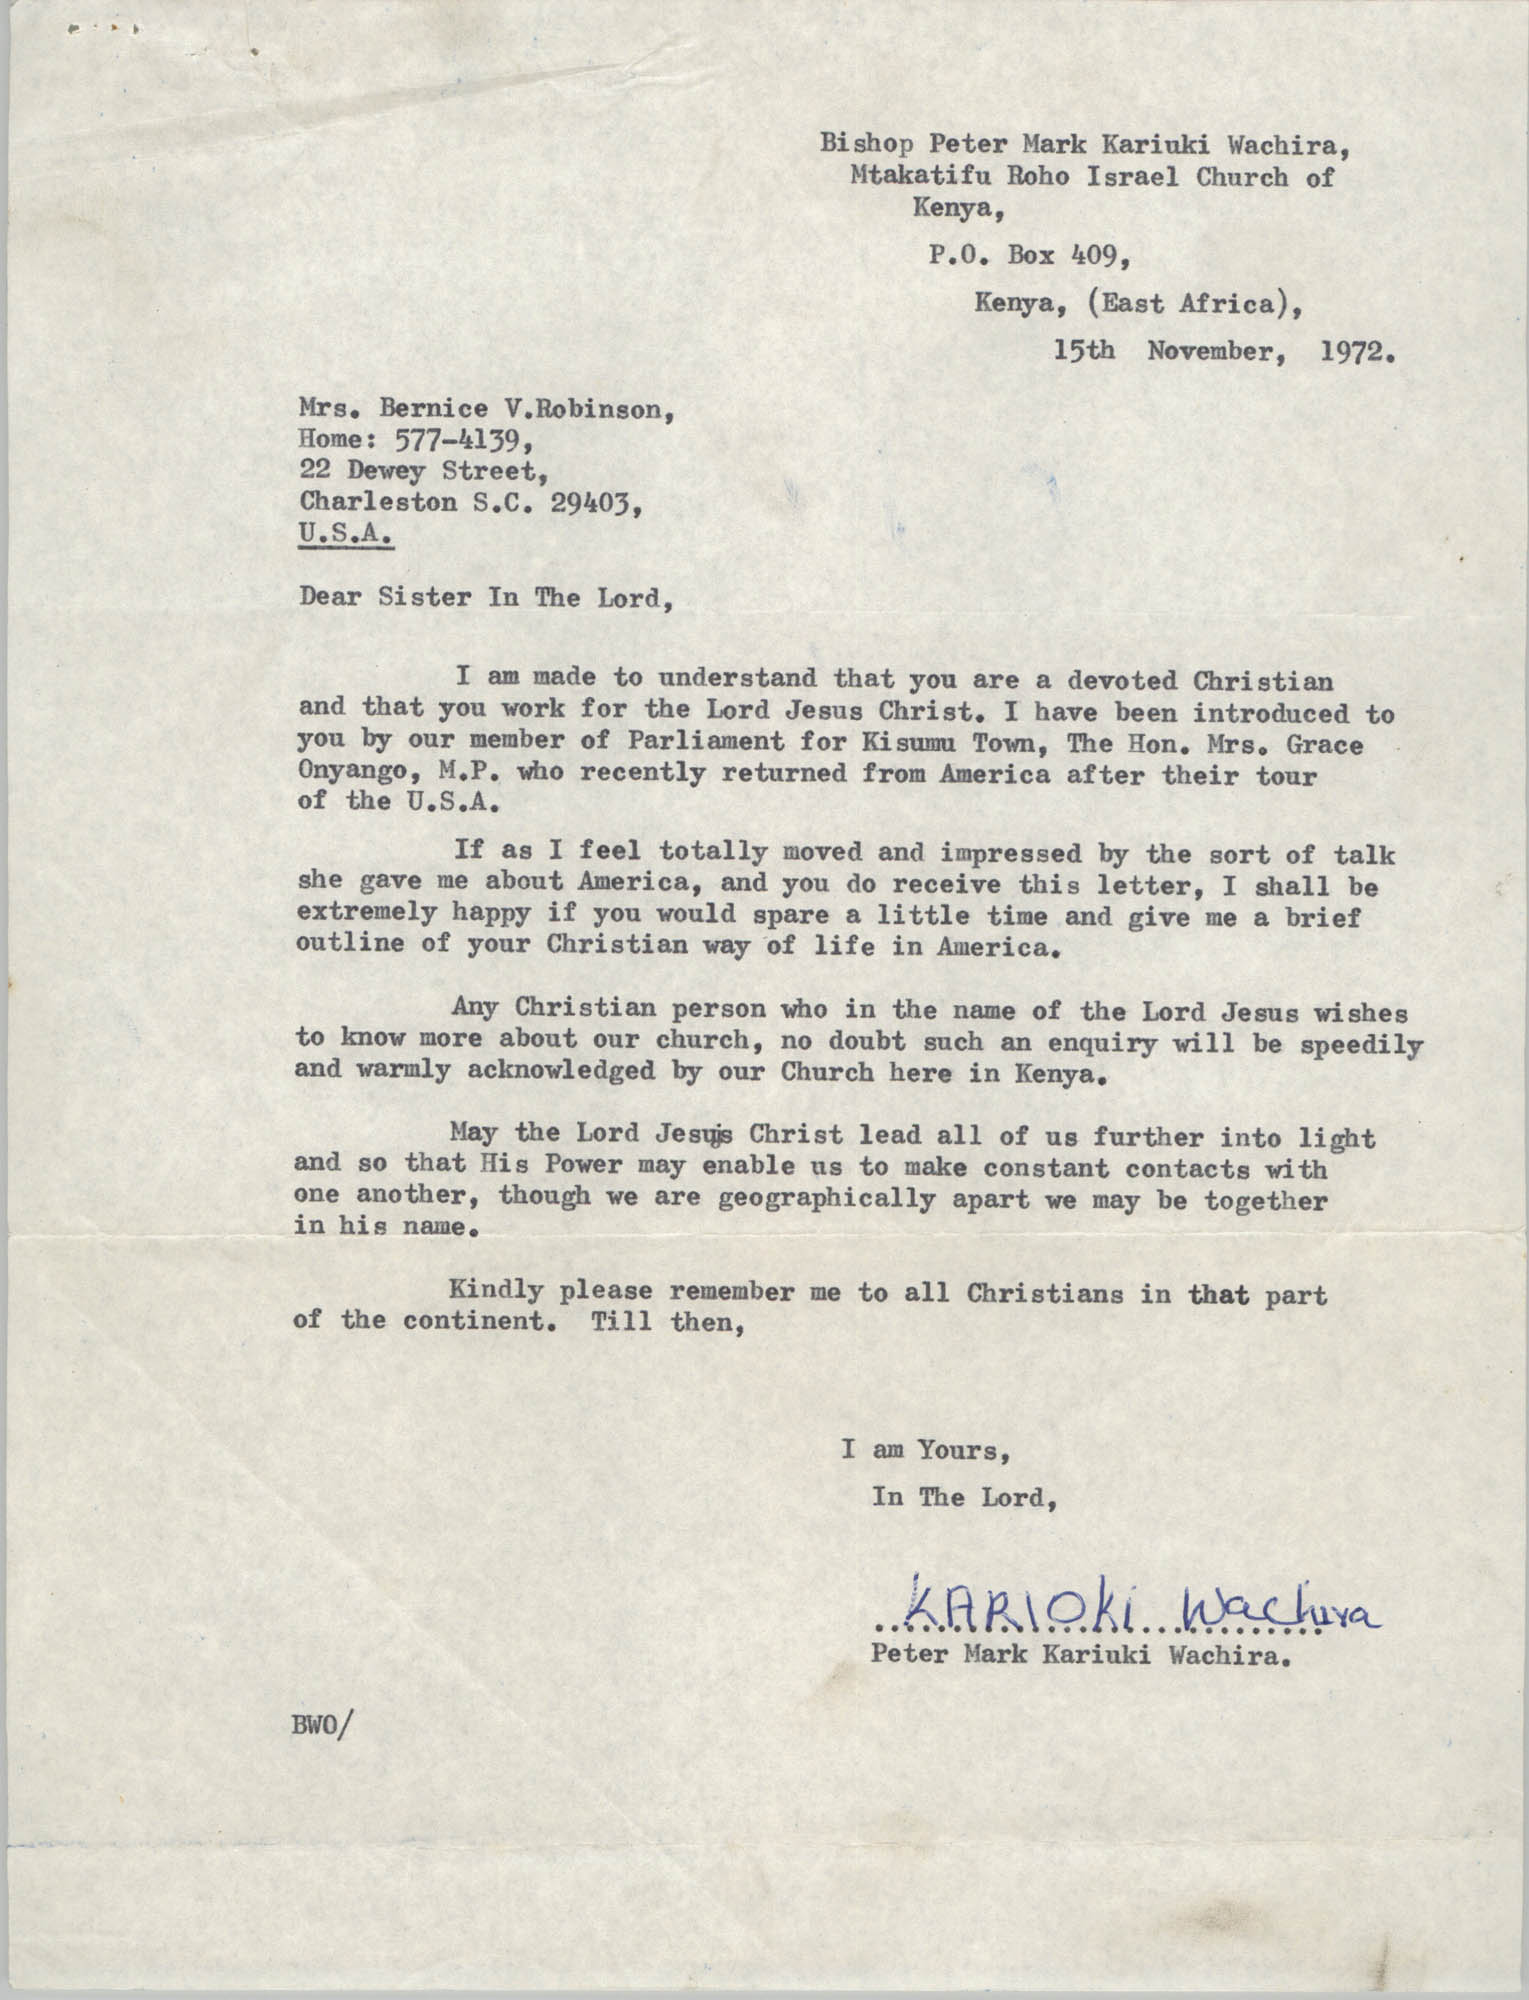 Letter from Peter Mark Kariuki Wachira to Bernice Robinson, November 15, 1972